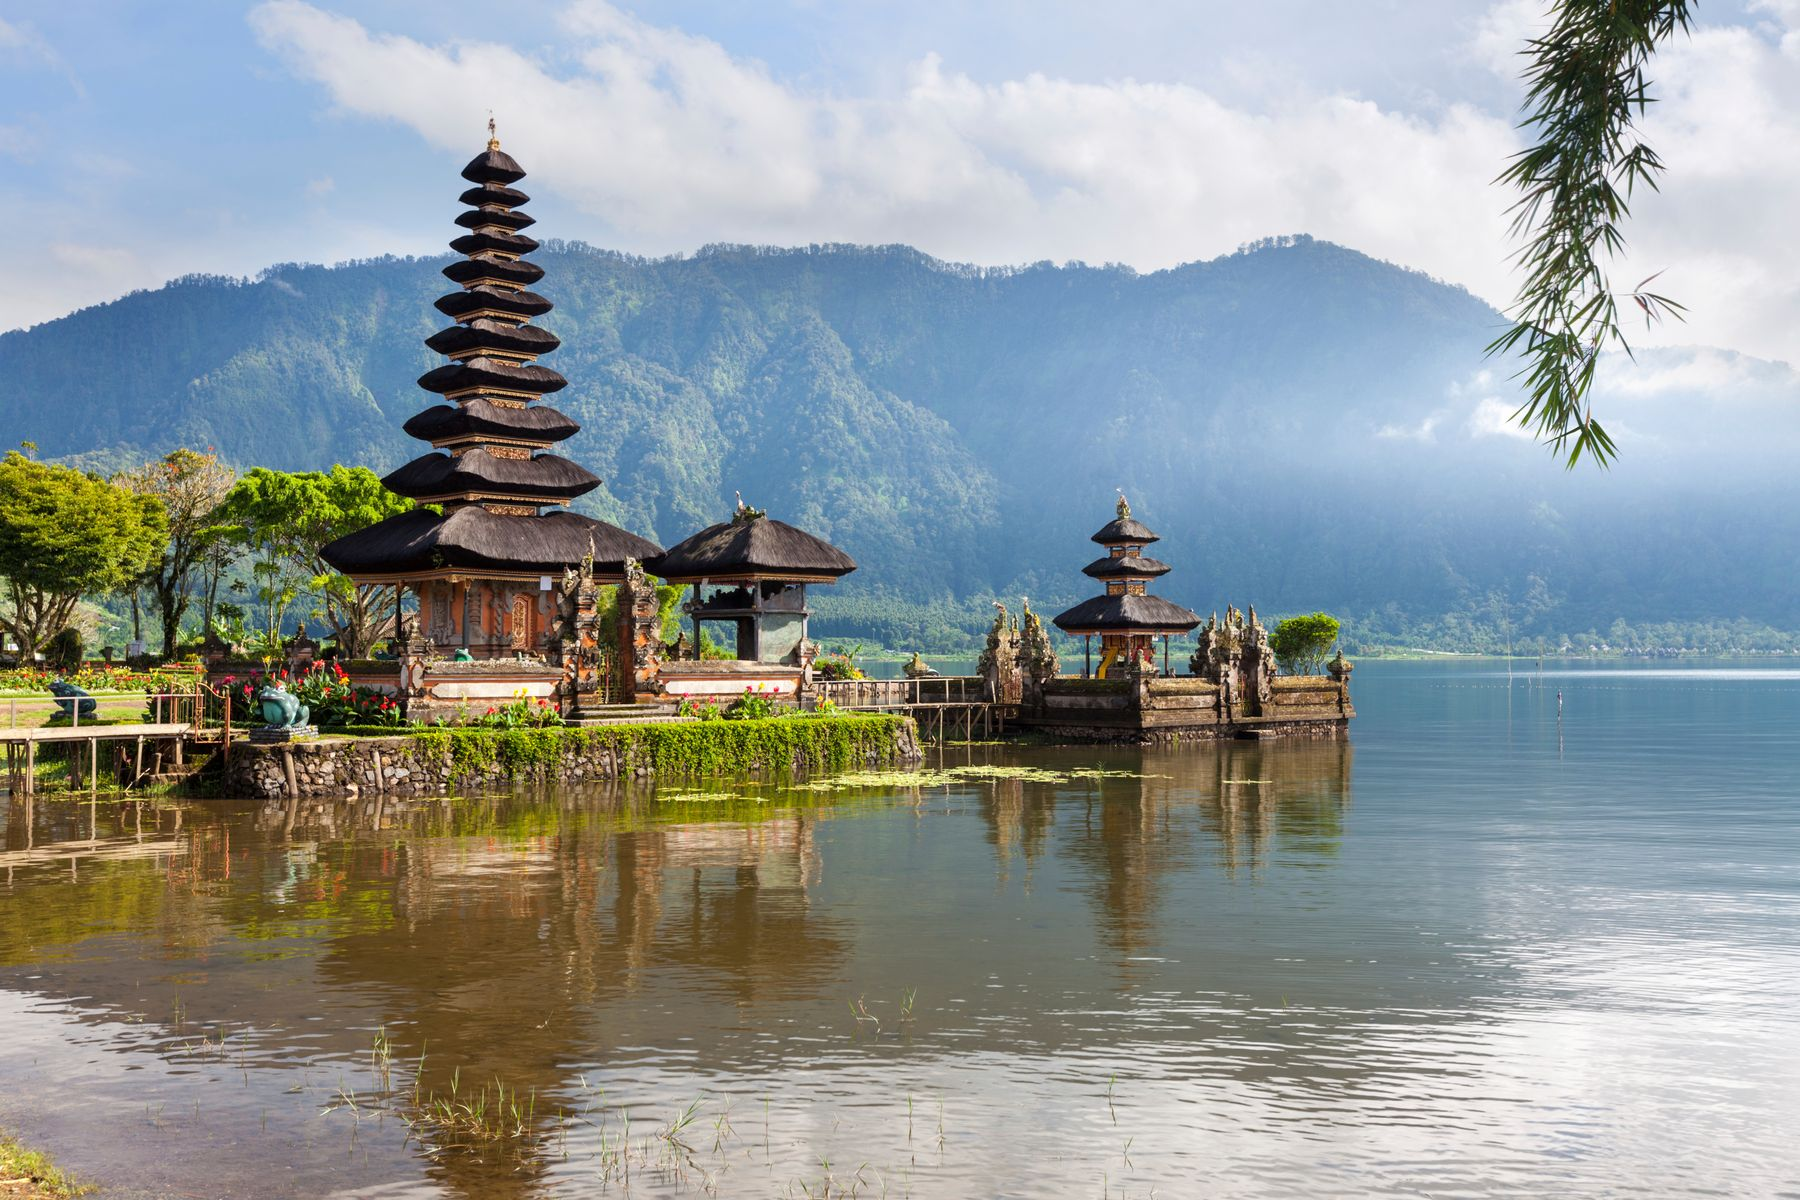 A temple in Bali, jutting out into a placid lake with with atmospheric misty mountains in the background